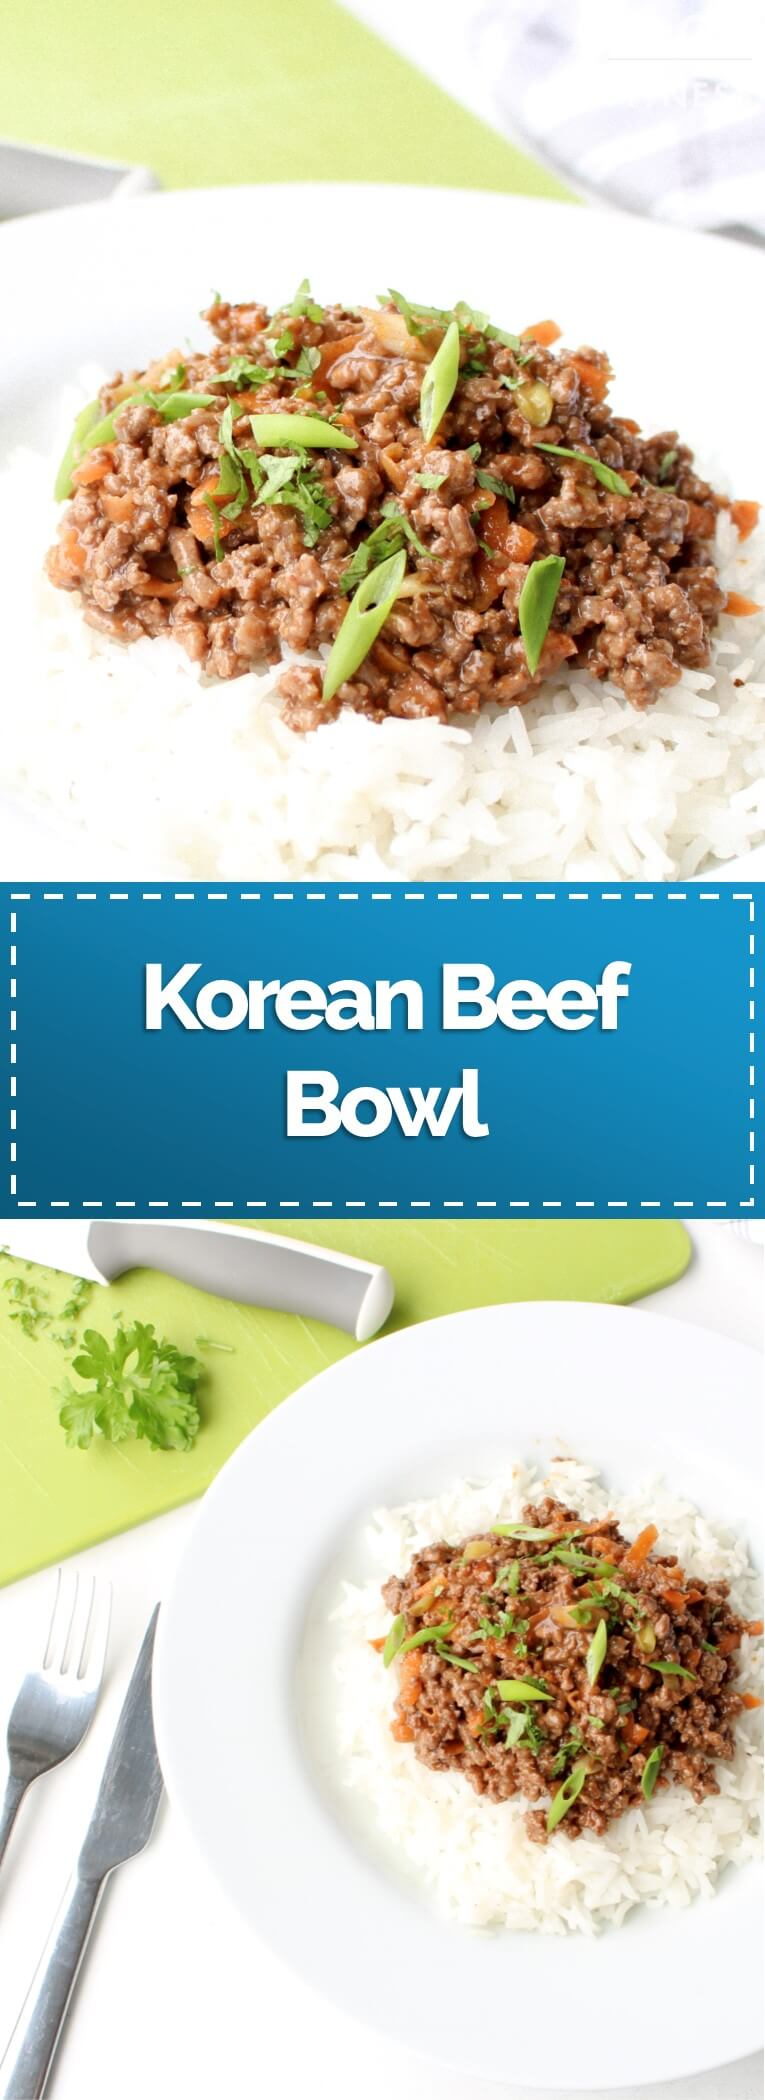 This is the easiest Korean Beef recipe you'll probably make. #recipeoftheweek #koreanfood #beef #recipe